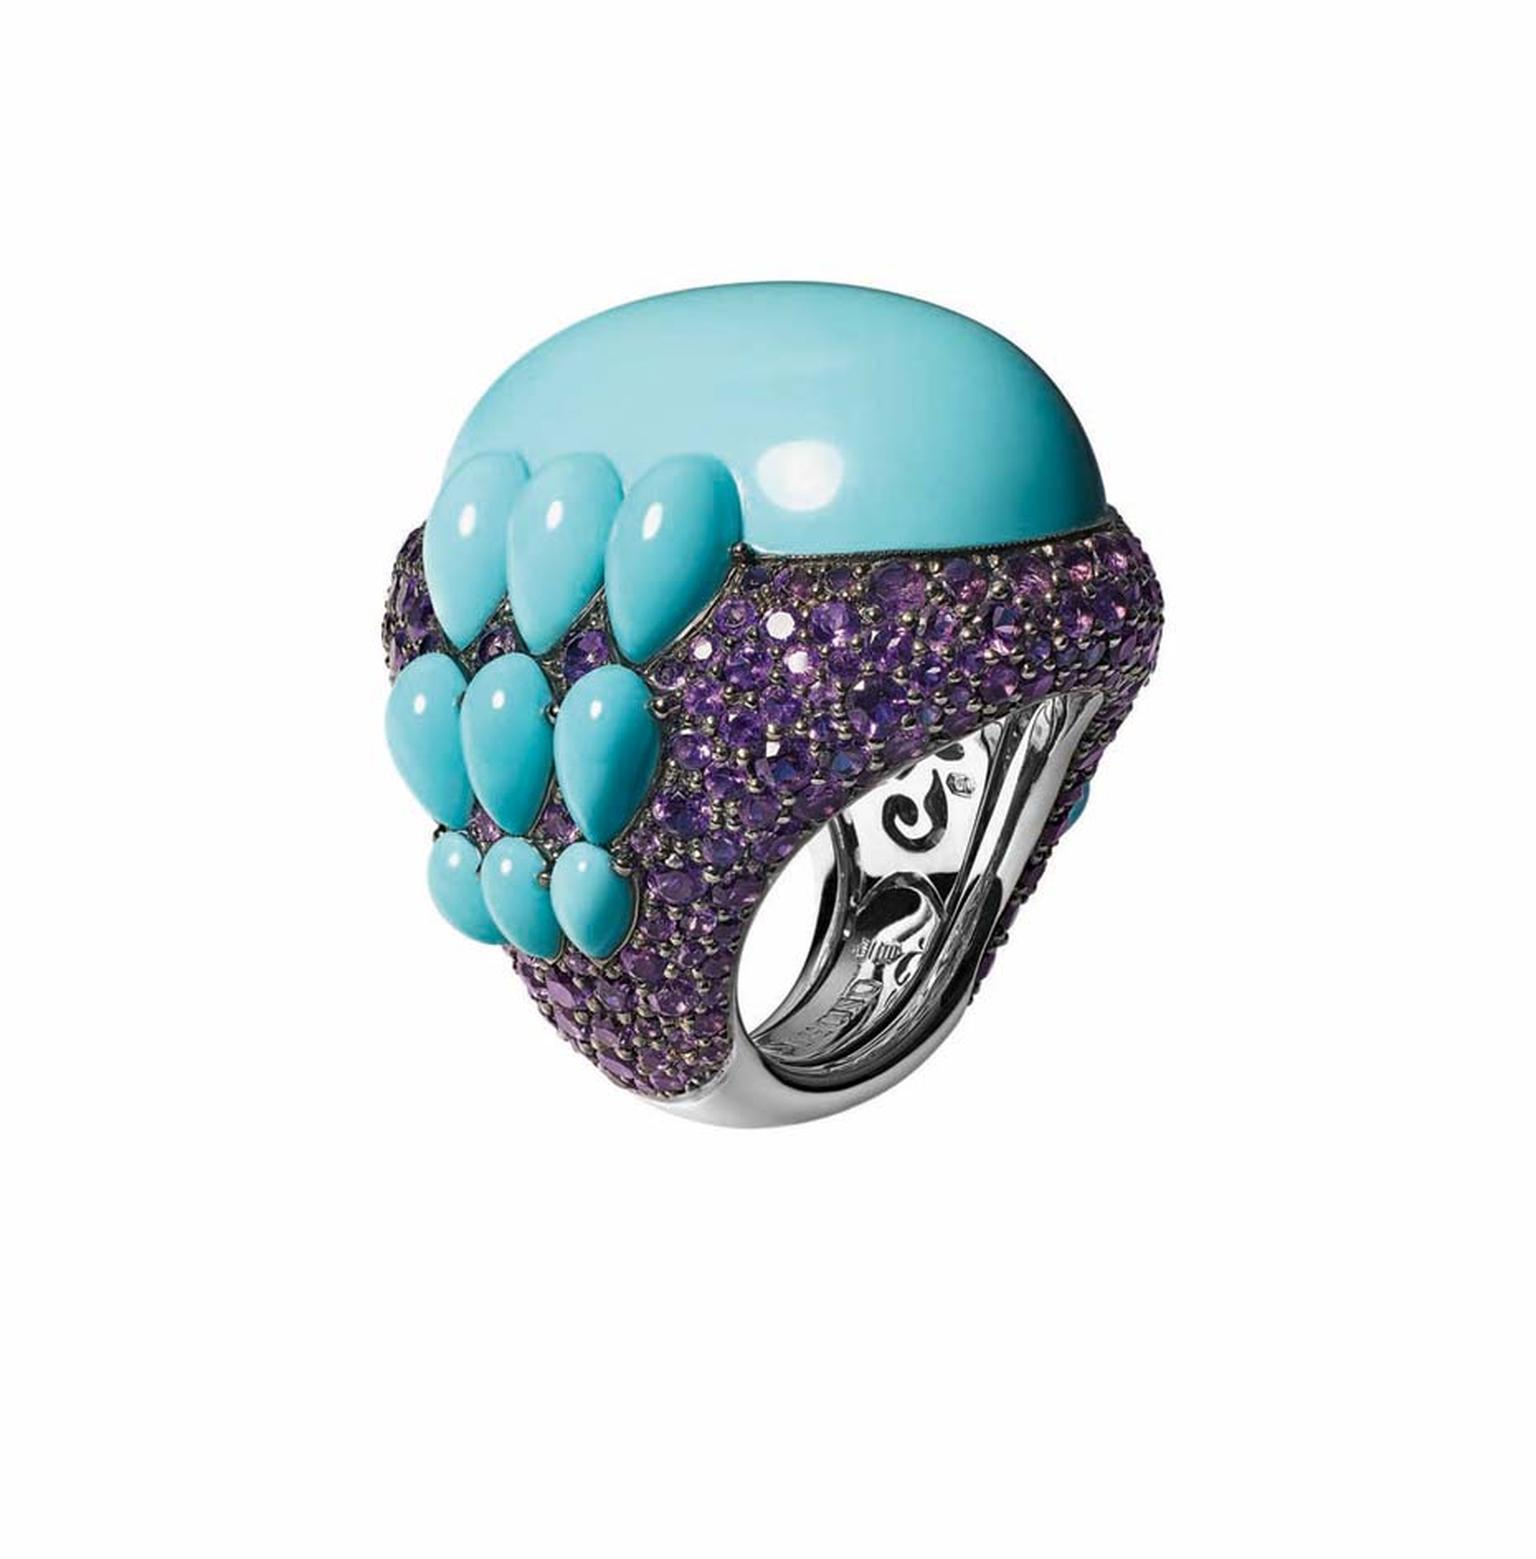 Melody of Colours turquoise and amethyst ring, set in white gold by de GRISOGONO.